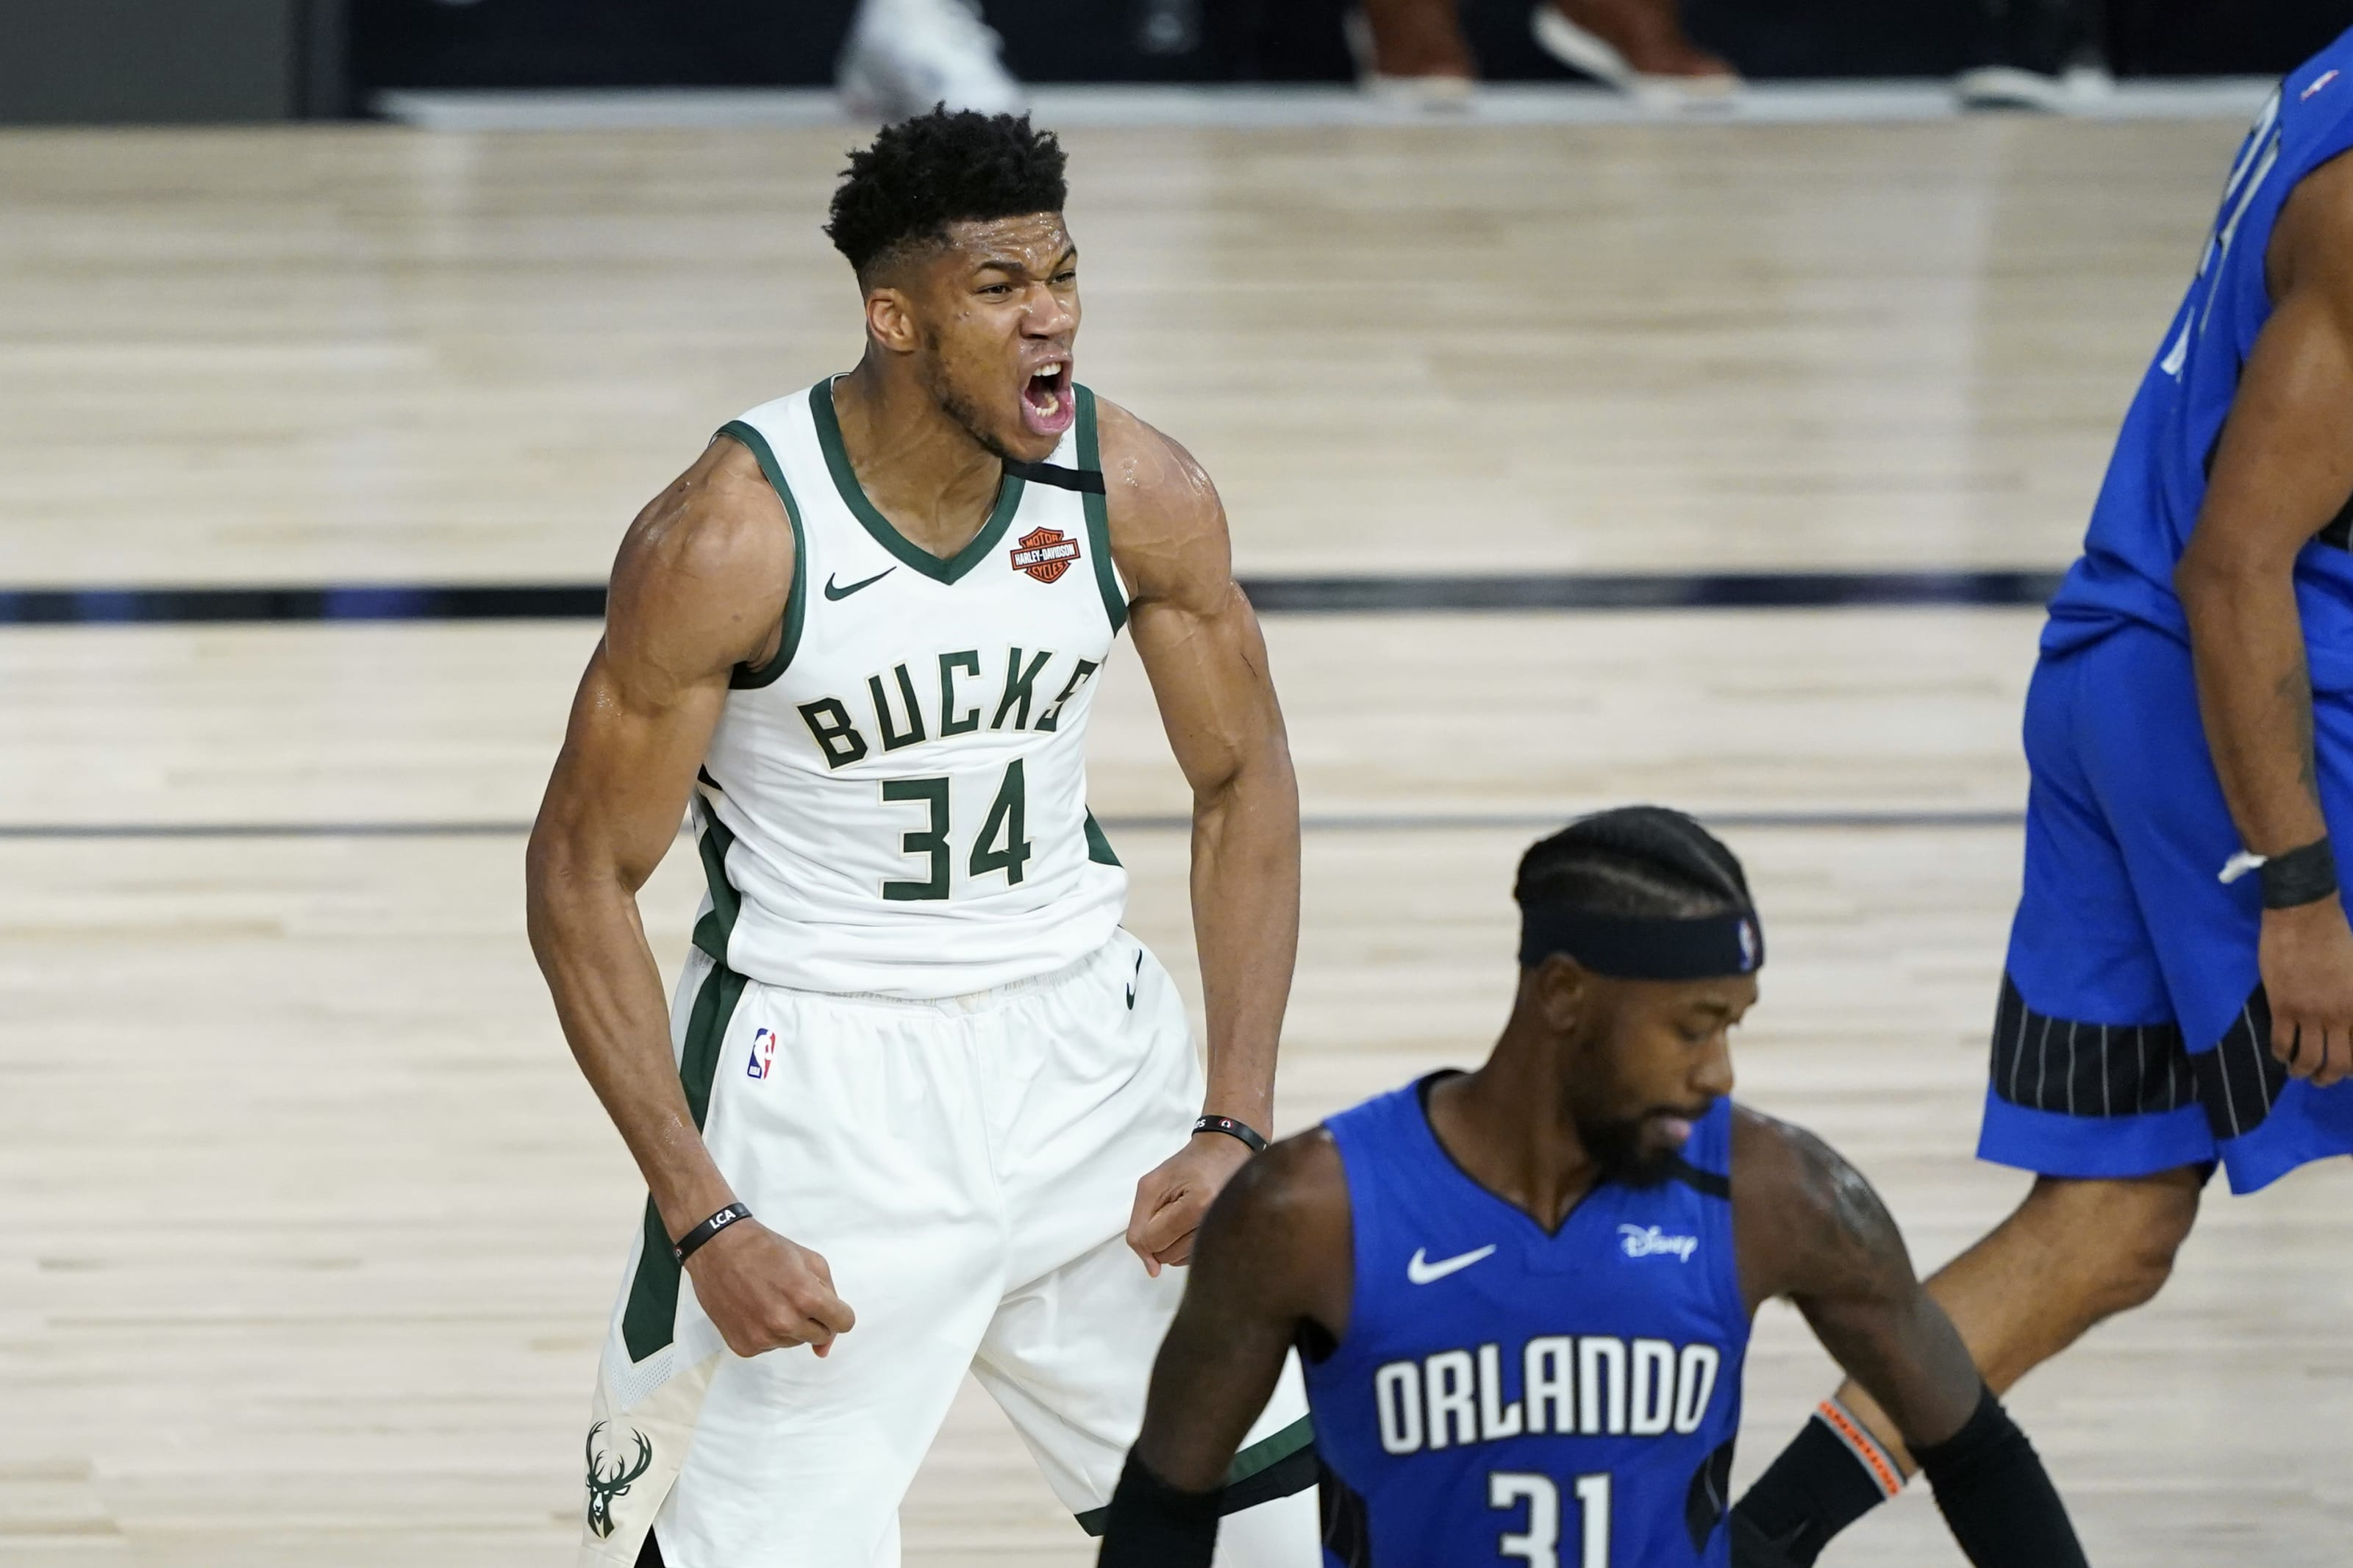 Heat sul velluto coi Pacers, Milwaukee sale 2-1 contro i Magic con uno straripante Giannis